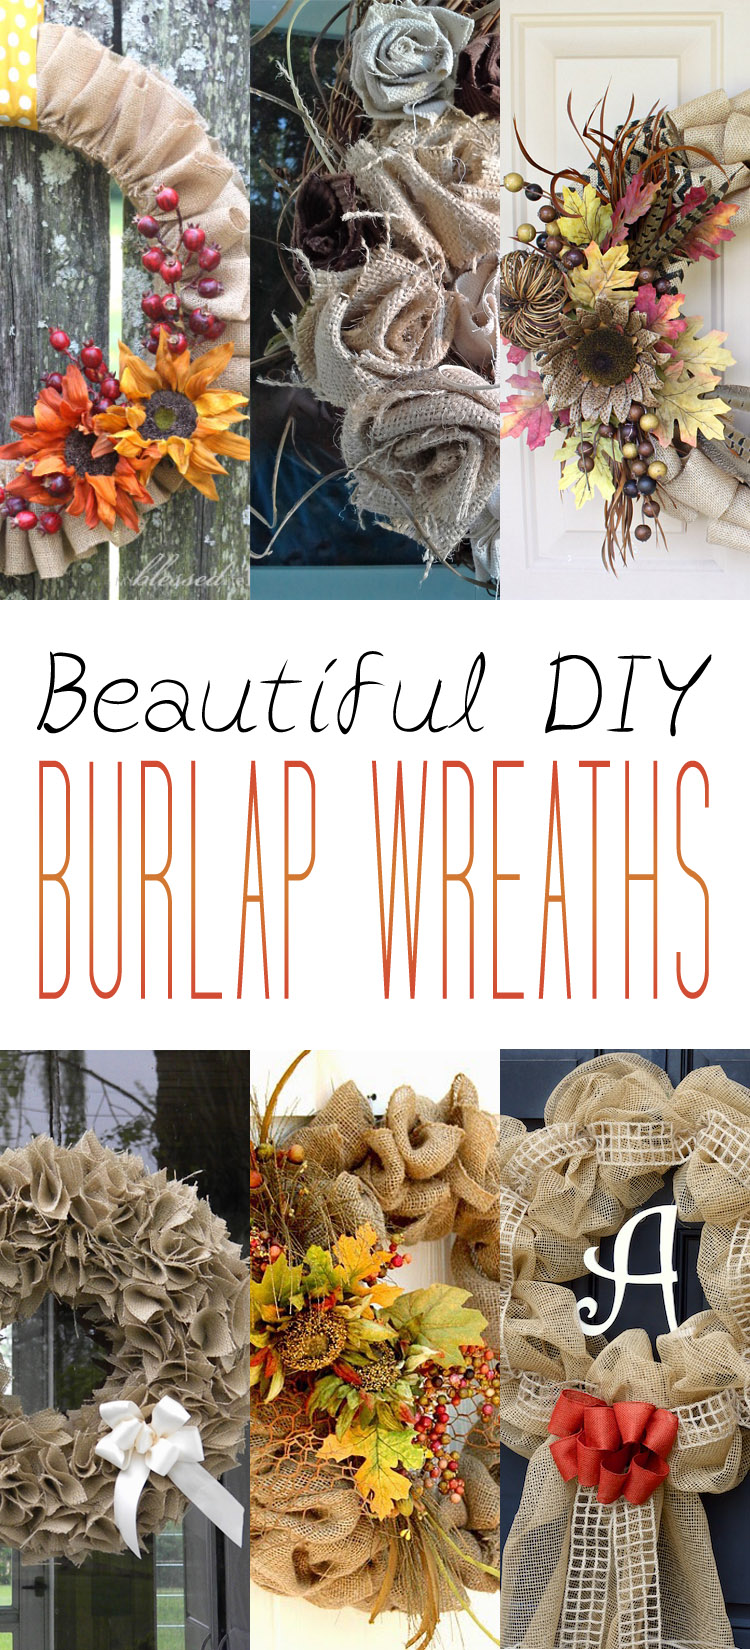 http://thecottagemarket.com/wp-content/uploads/2015/10/burlapwreath-TOWER-0001.jpg